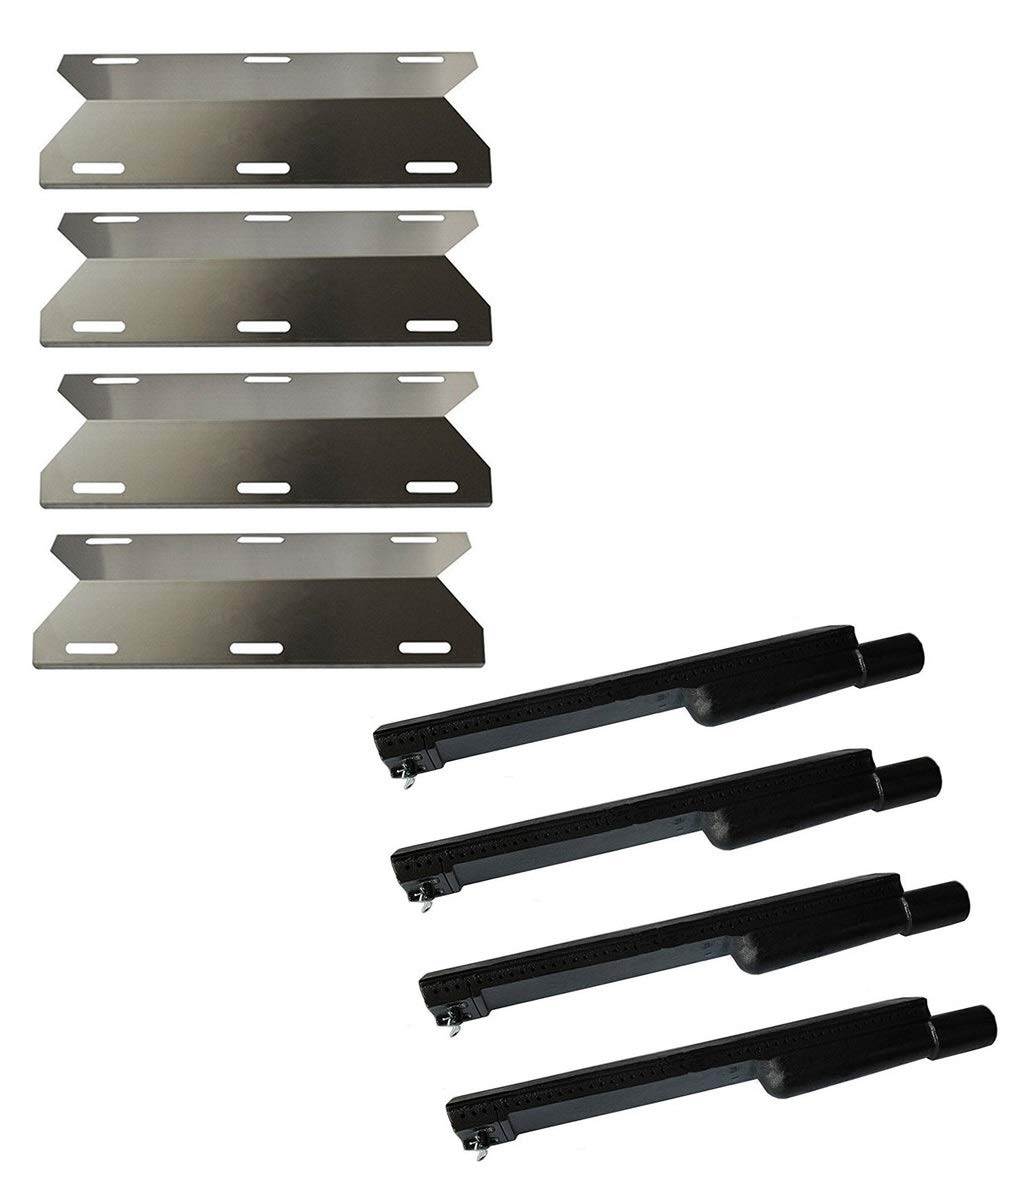 Hongso Jenn Air Gas Grill Repair Kit Replacement Grill Heat Plates and Burners - 4 Pack (CBF301, SPA231)